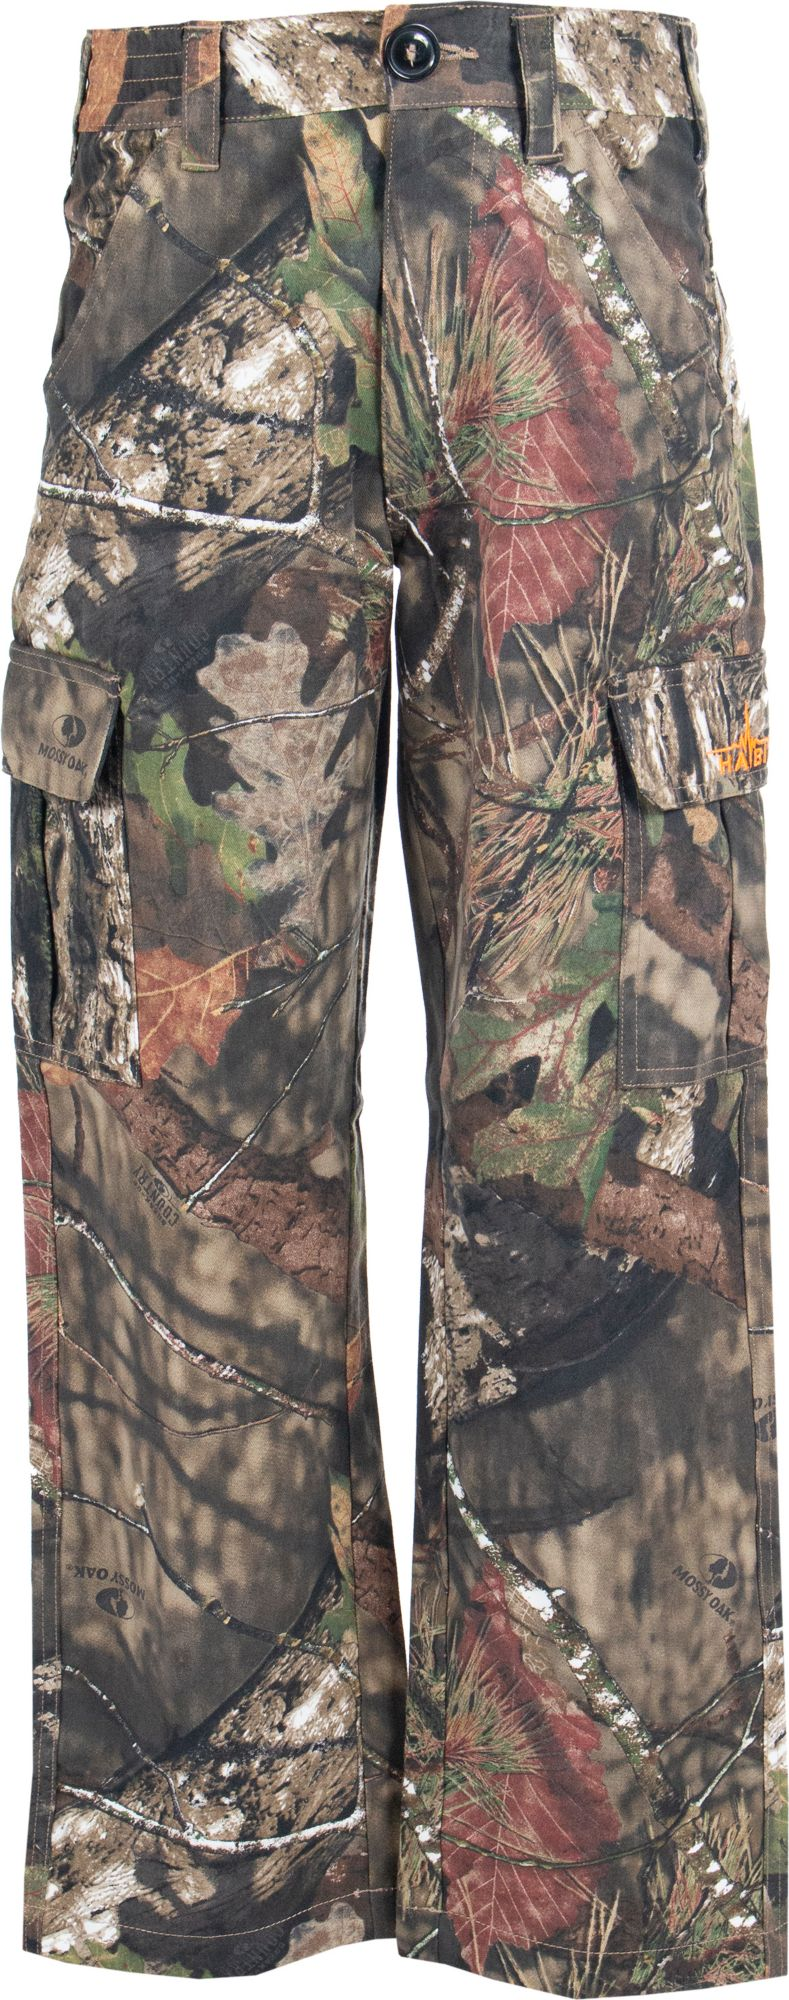 Habit Youth Bear Cave 6 Pocket Camo Hunting Pants, Kids, YS, Brown